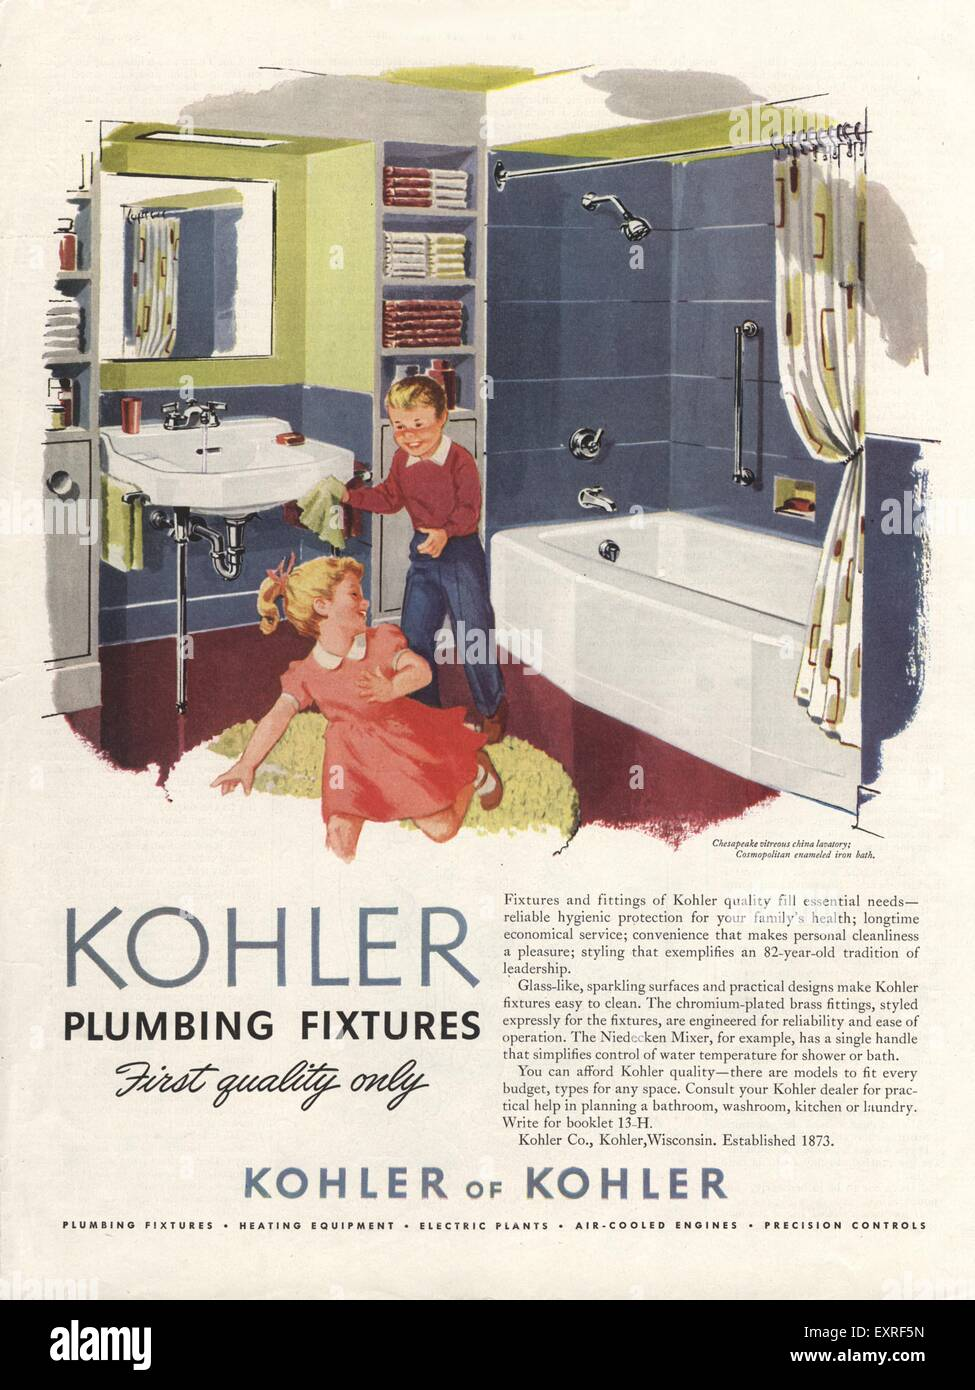 1950s USA Kohler Magazine Advert Stock Photo: 85339345 - Alamy